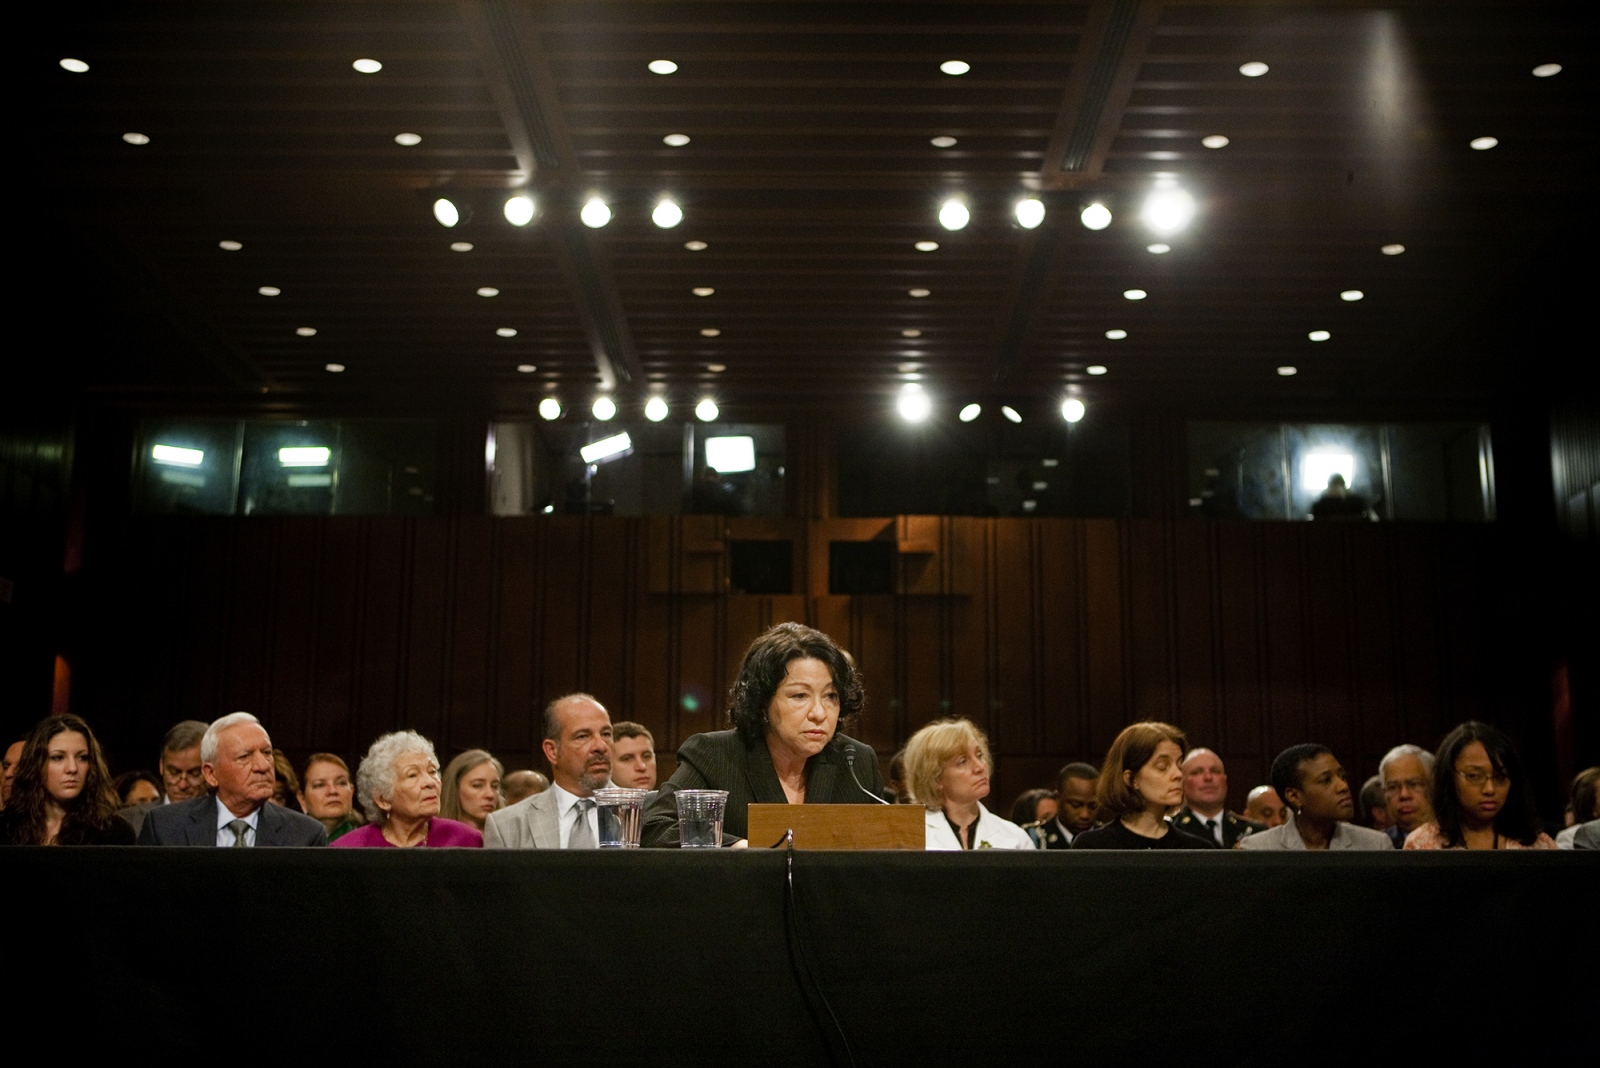 JudgeSonia Sotomayor at her hearing to be a Supreme Court justice.